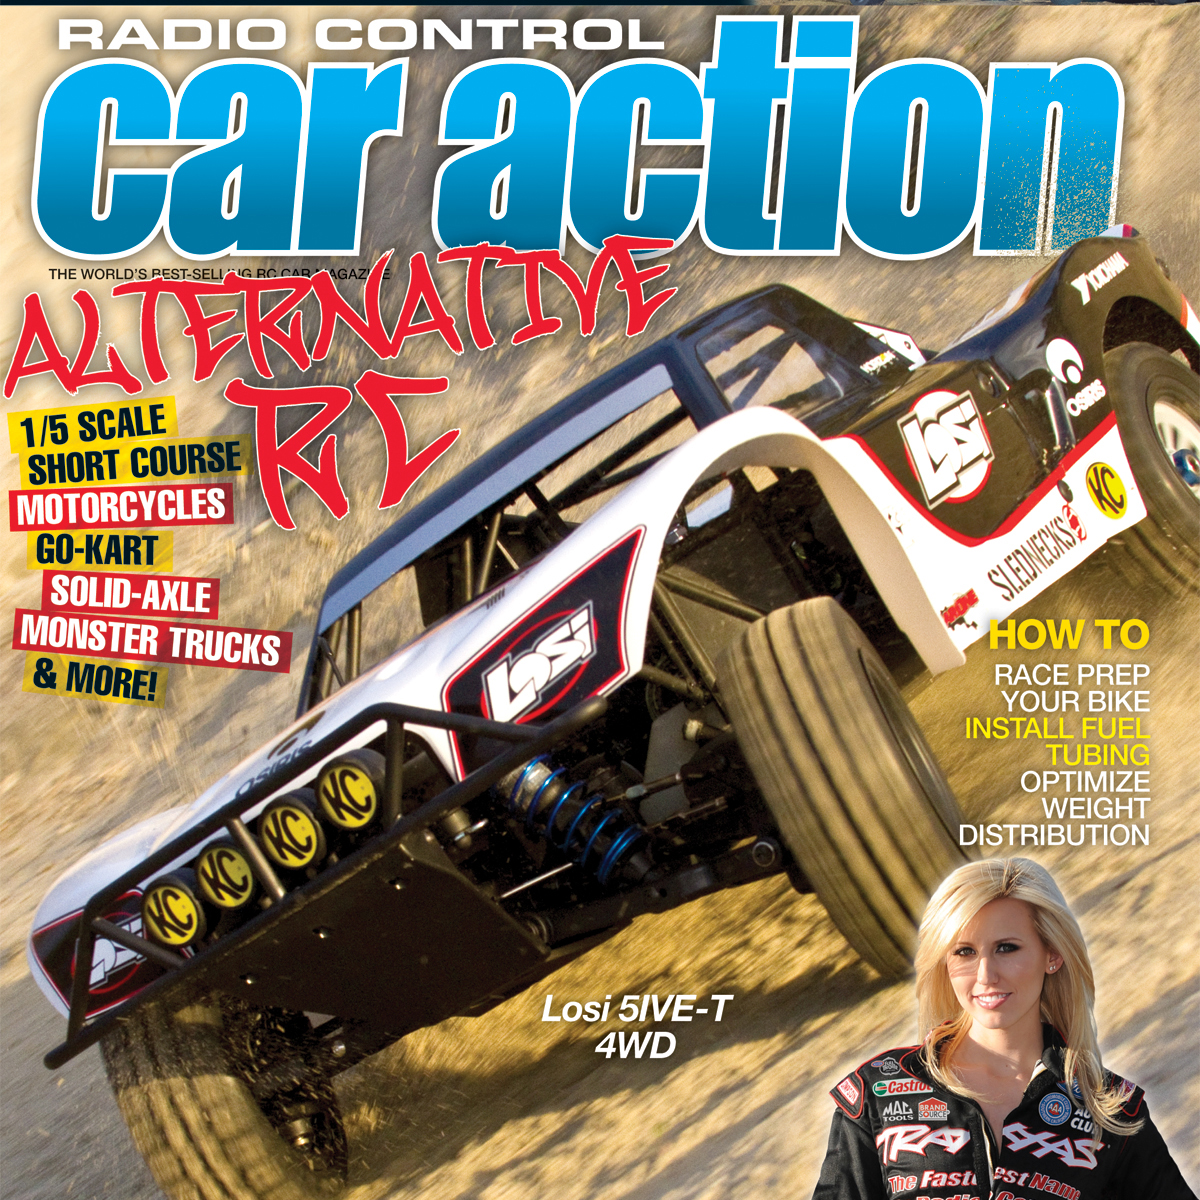 Radio Control Car Action April 2012 On Sale Now.  Check out some pics from the issue!